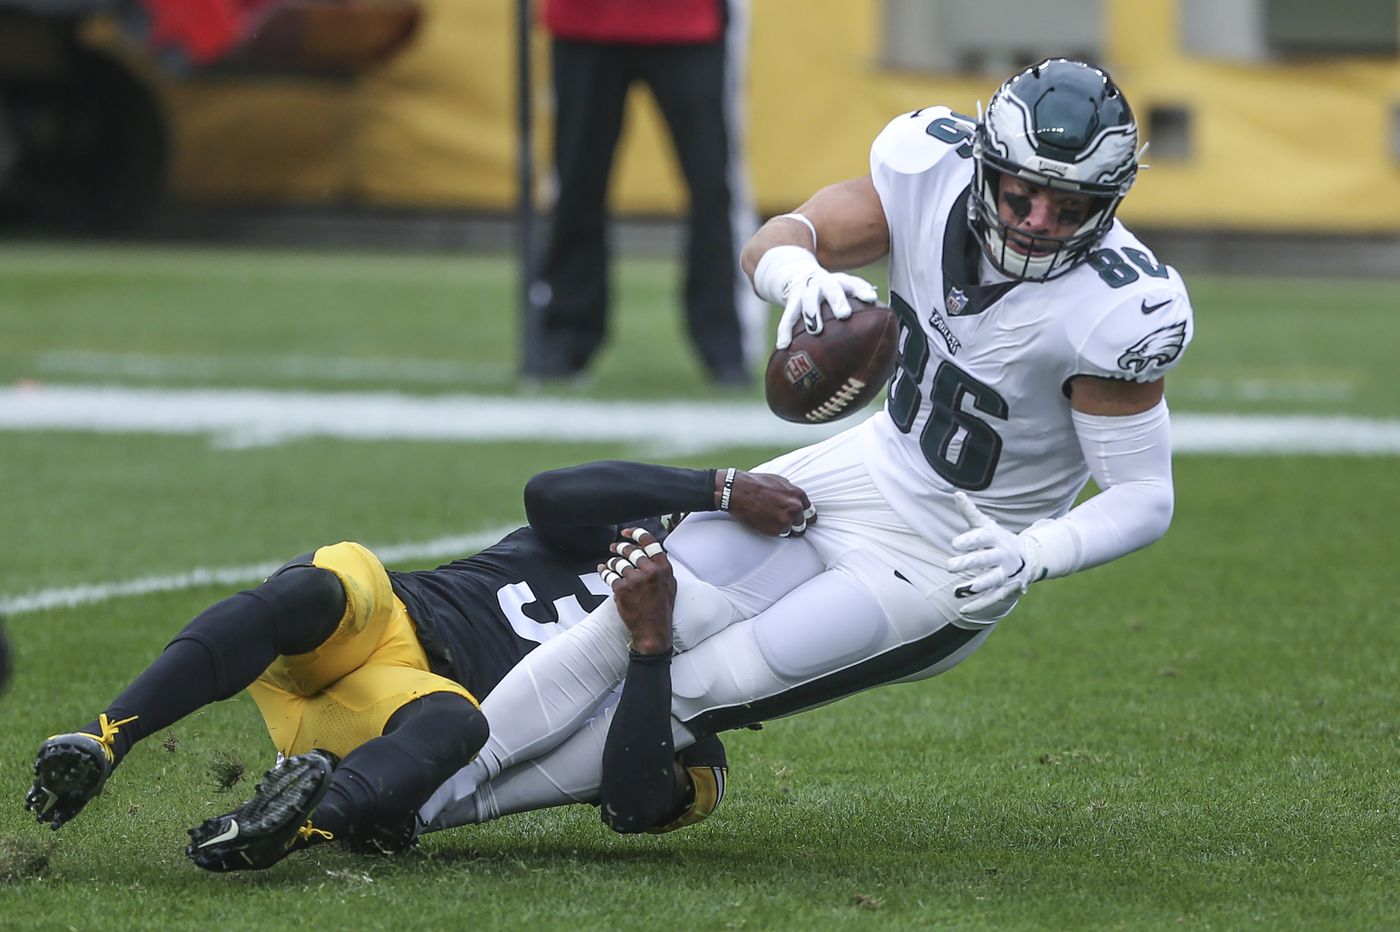 Eagles-Steelers: 5 reasons why Eagles lost and head into Week 6 with a 1-3-1 record